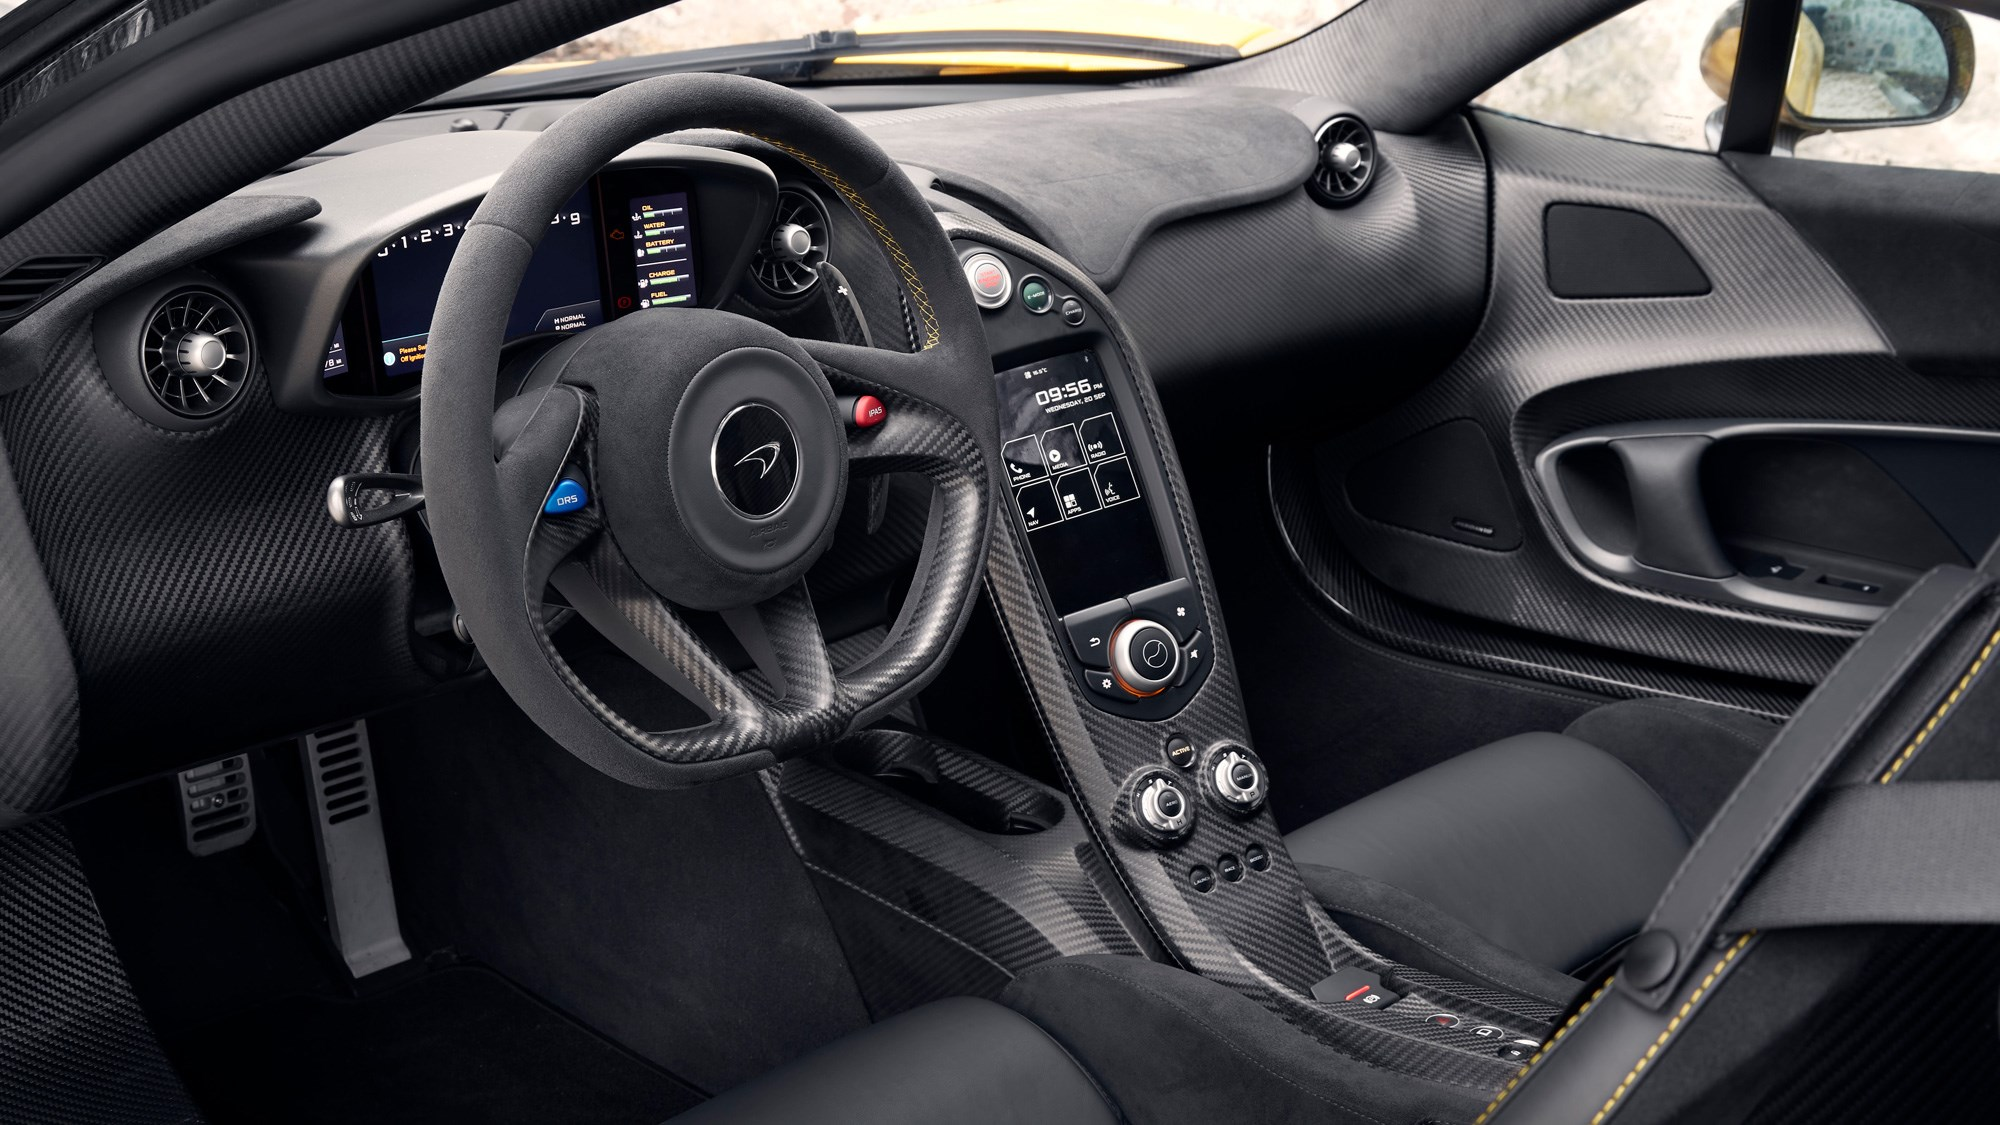 McLaren P1 review, Bahrain, interior, steering wheel, instruments